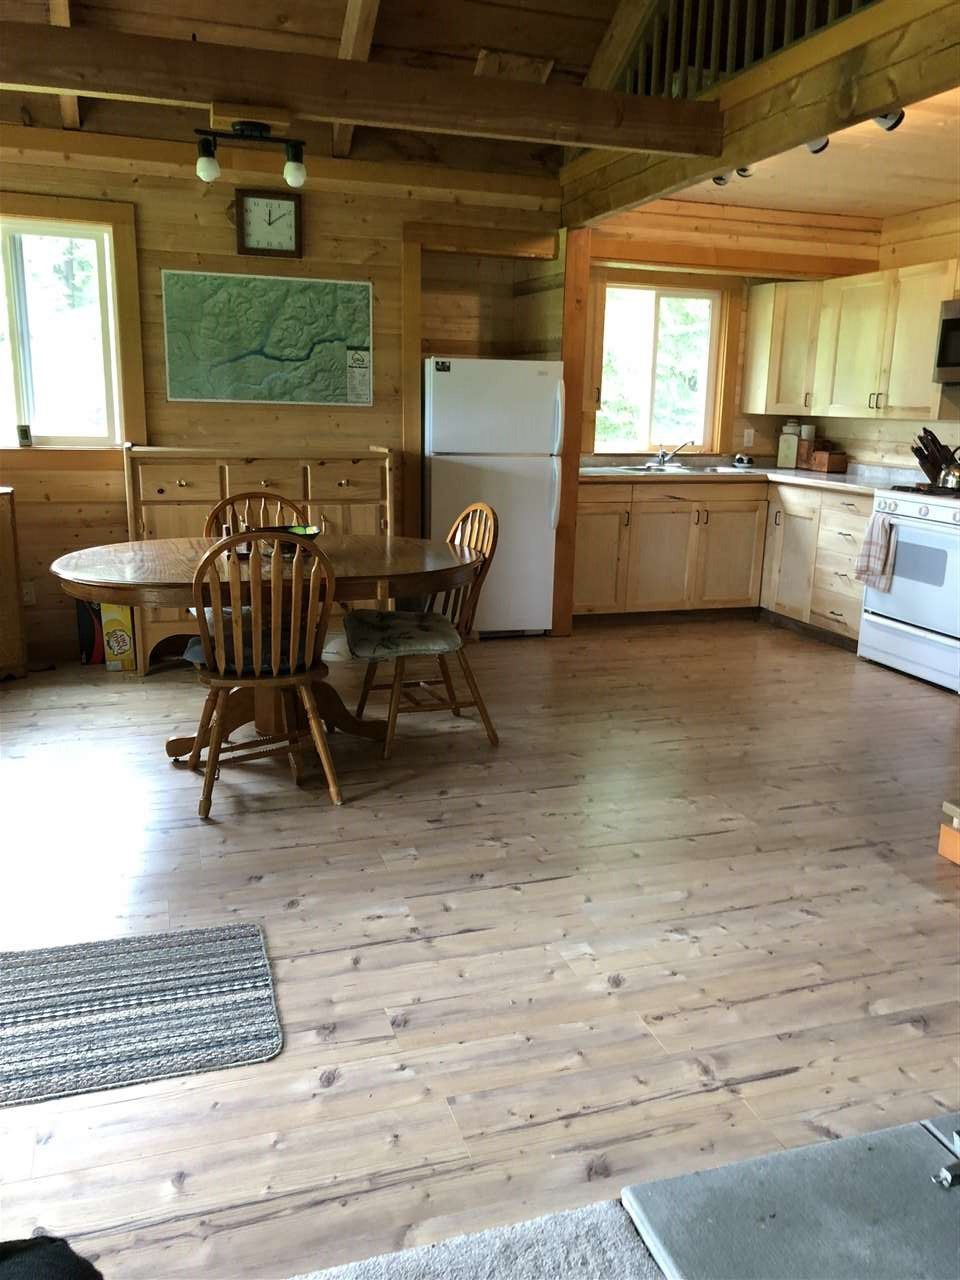 Photo 3: Photos: 5660 MARSHALL CREEK Road: Horsefly House for sale (Williams Lake (Zone 27))  : MLS®# R2277044